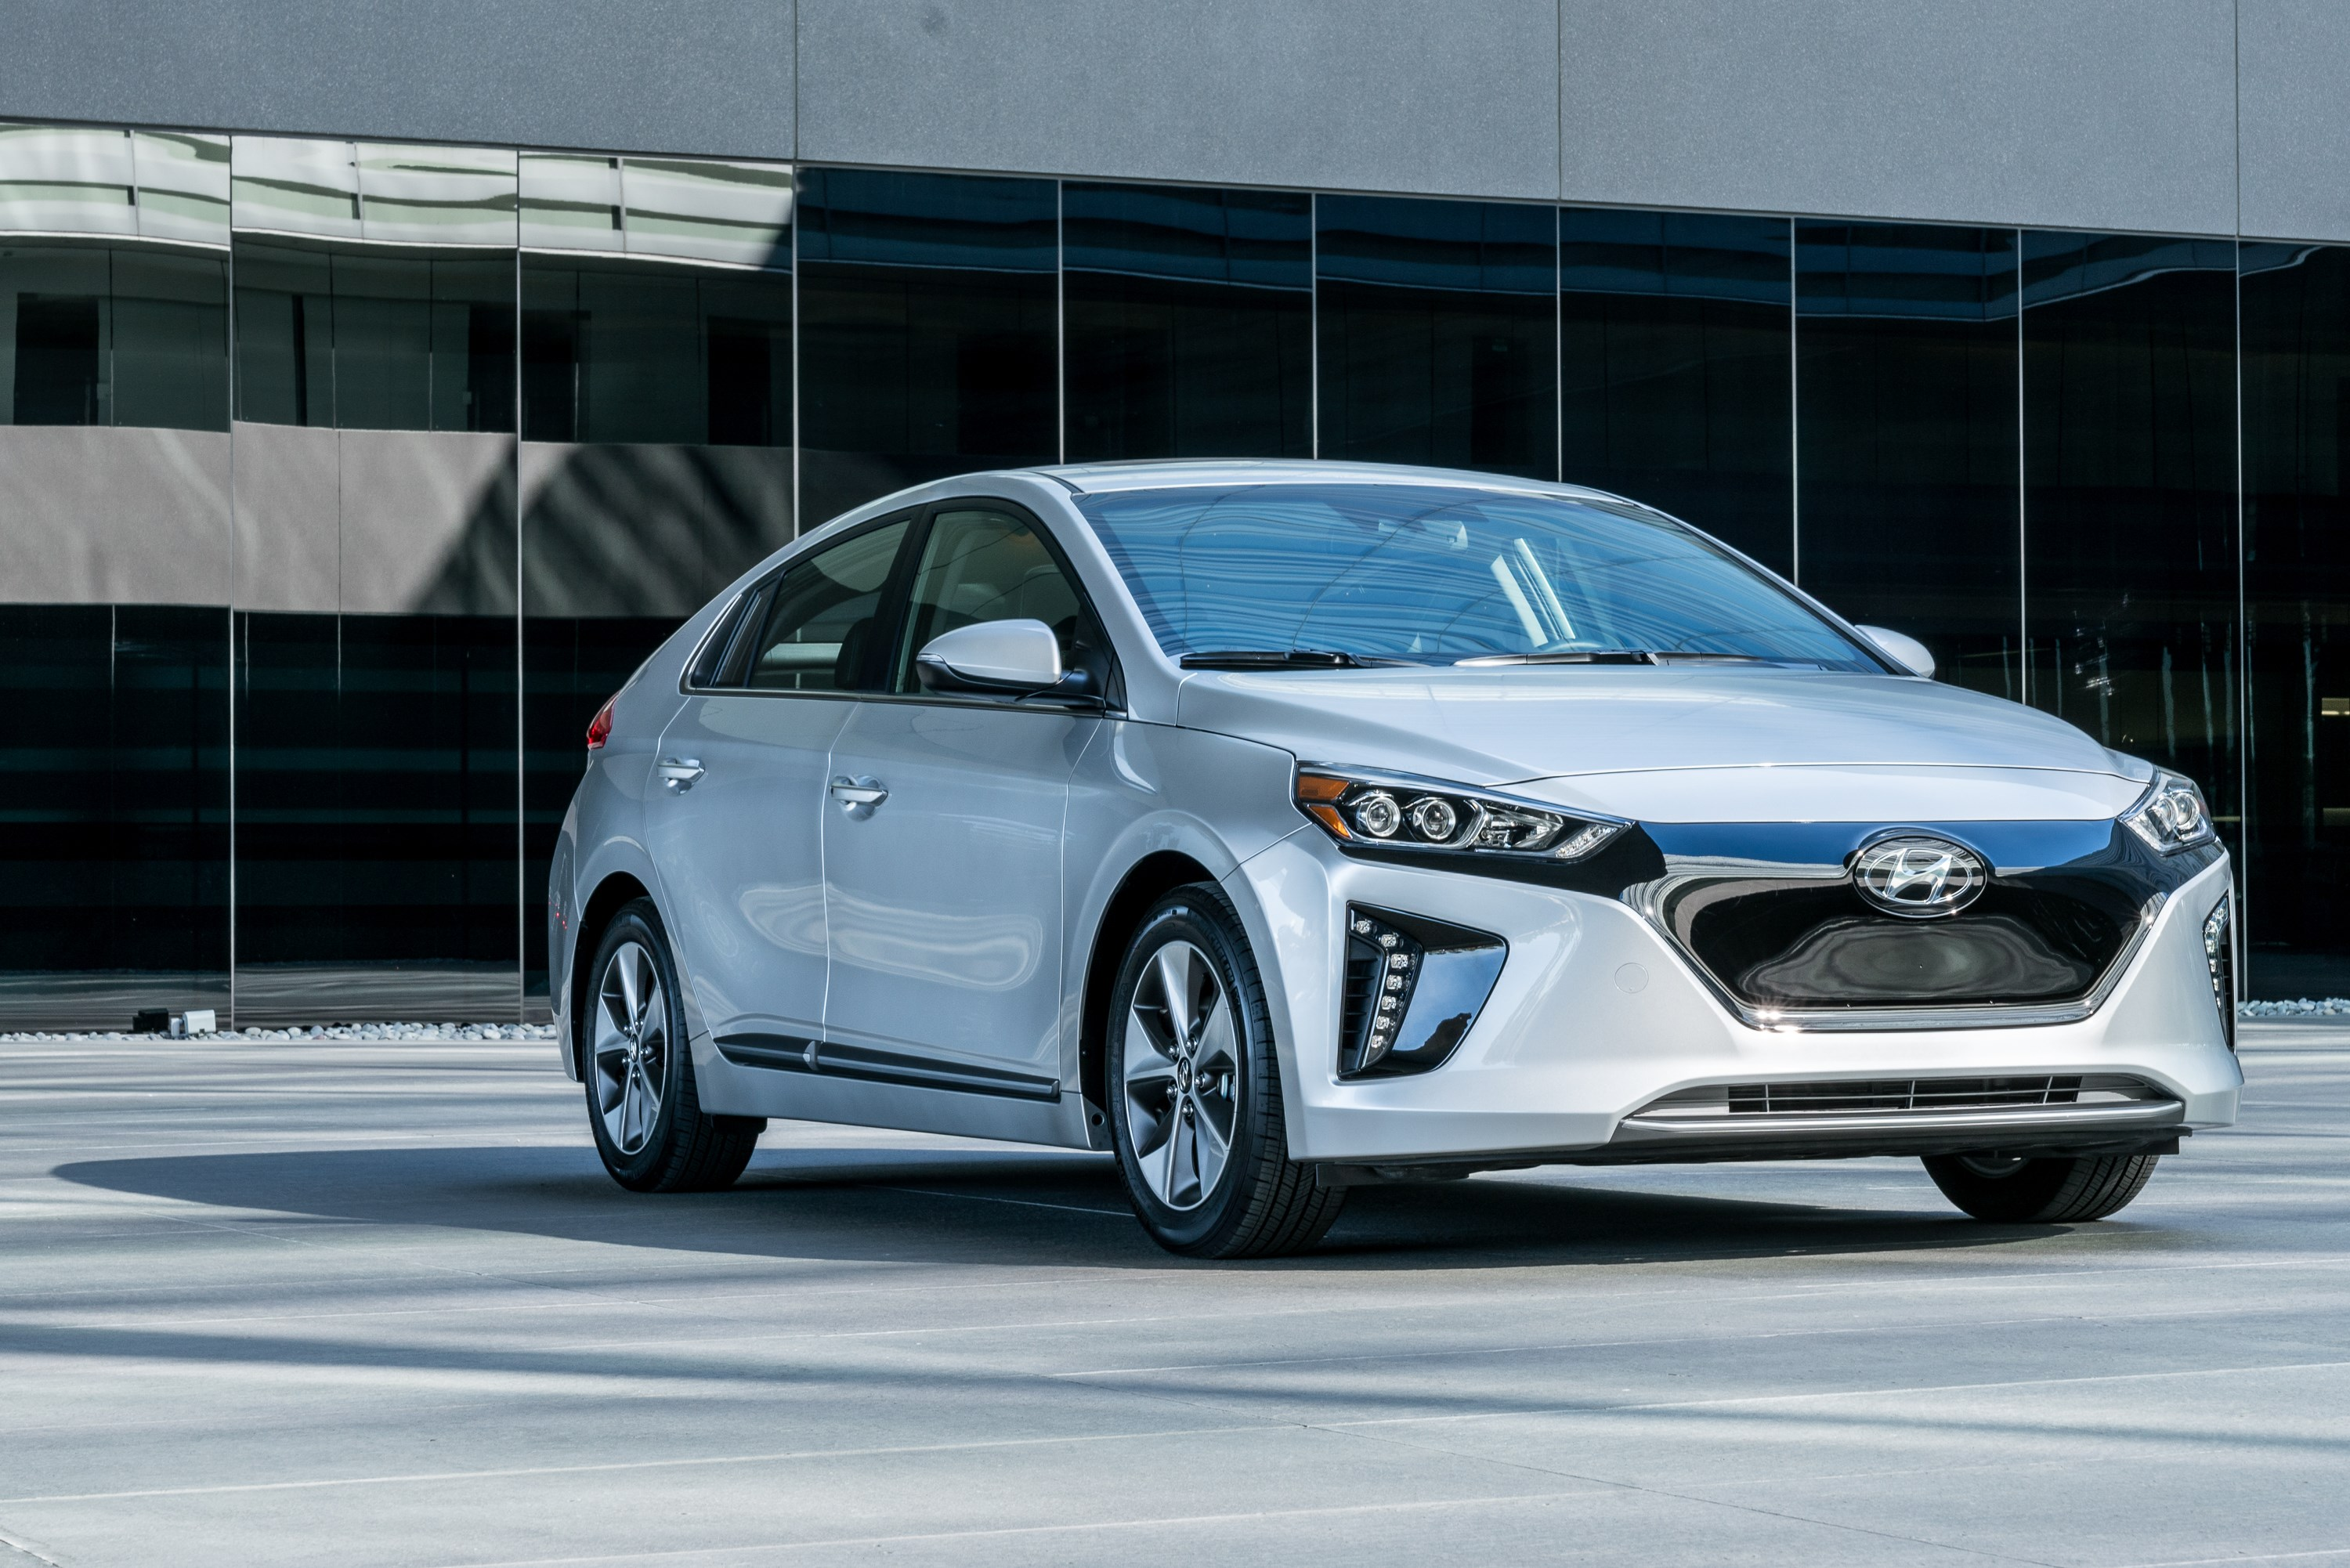 Best deals on hybrid, plug-in, and electric cars for February 2019